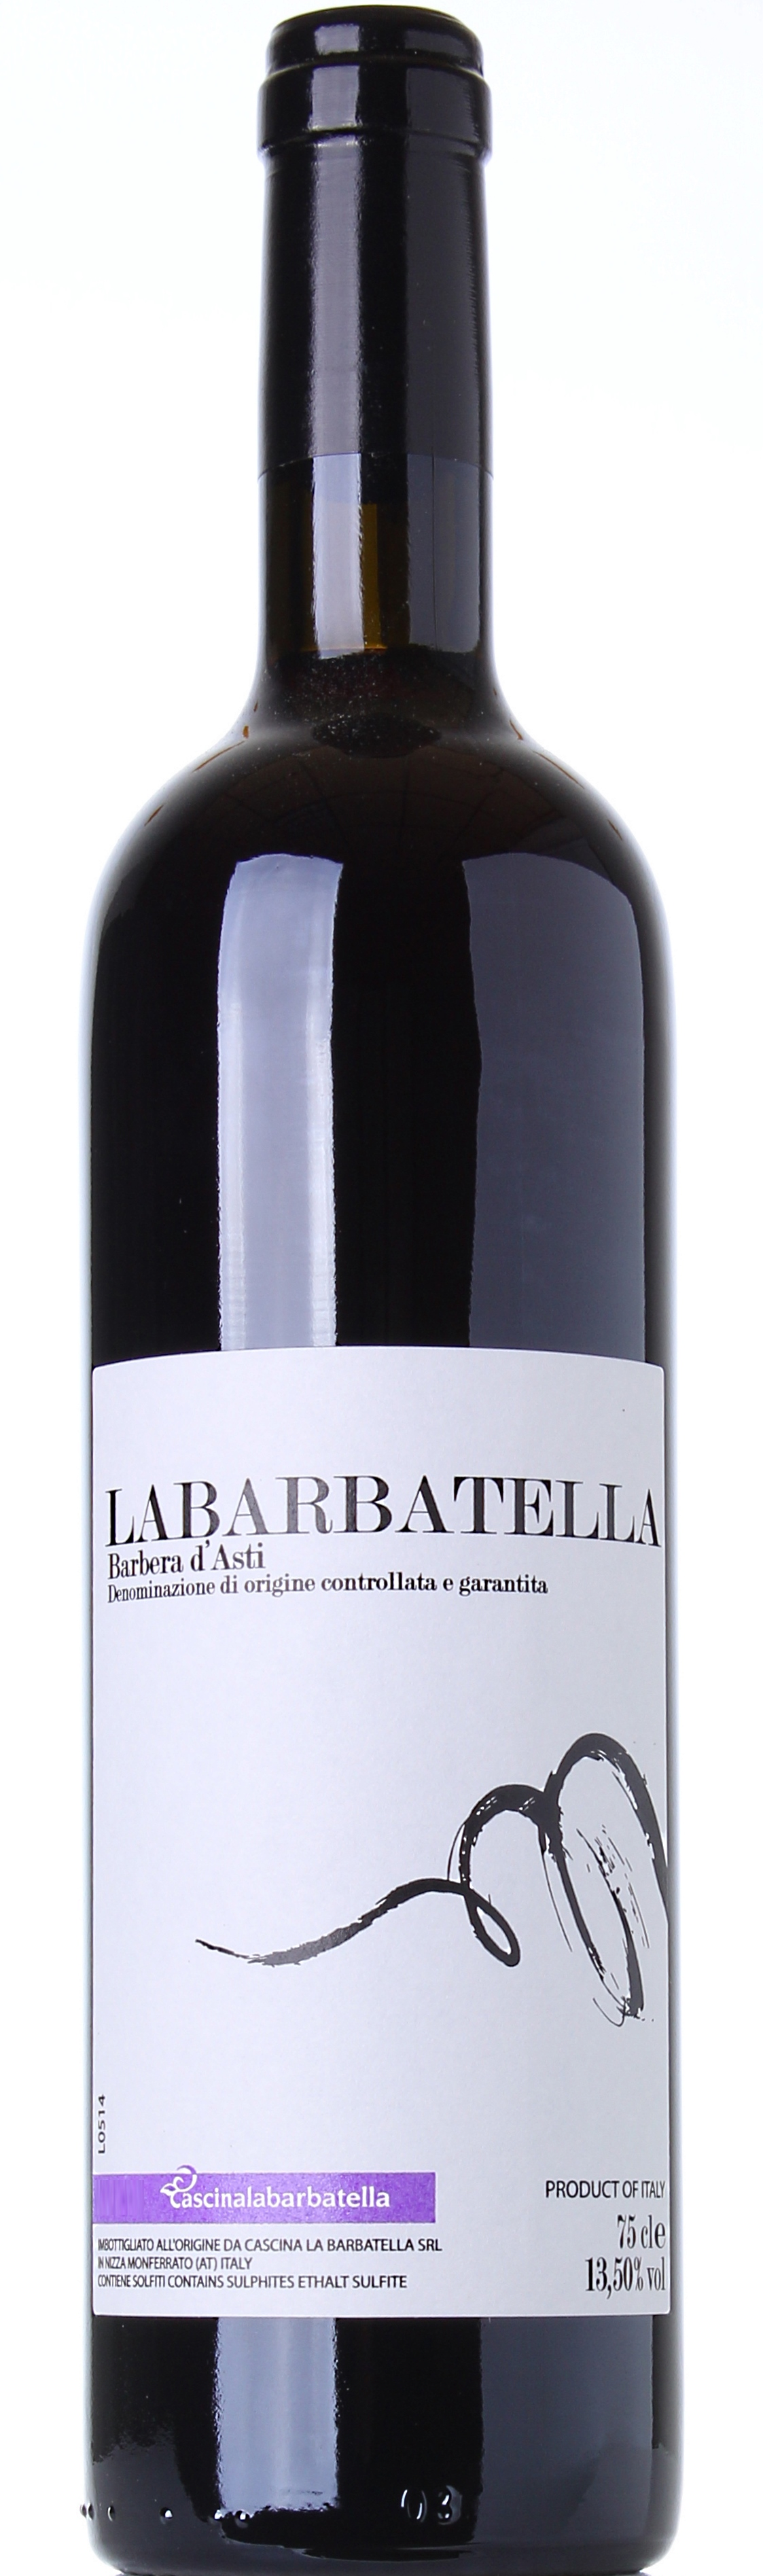 CASCINA LA BARBATELLA BARBERA DASTI 2012